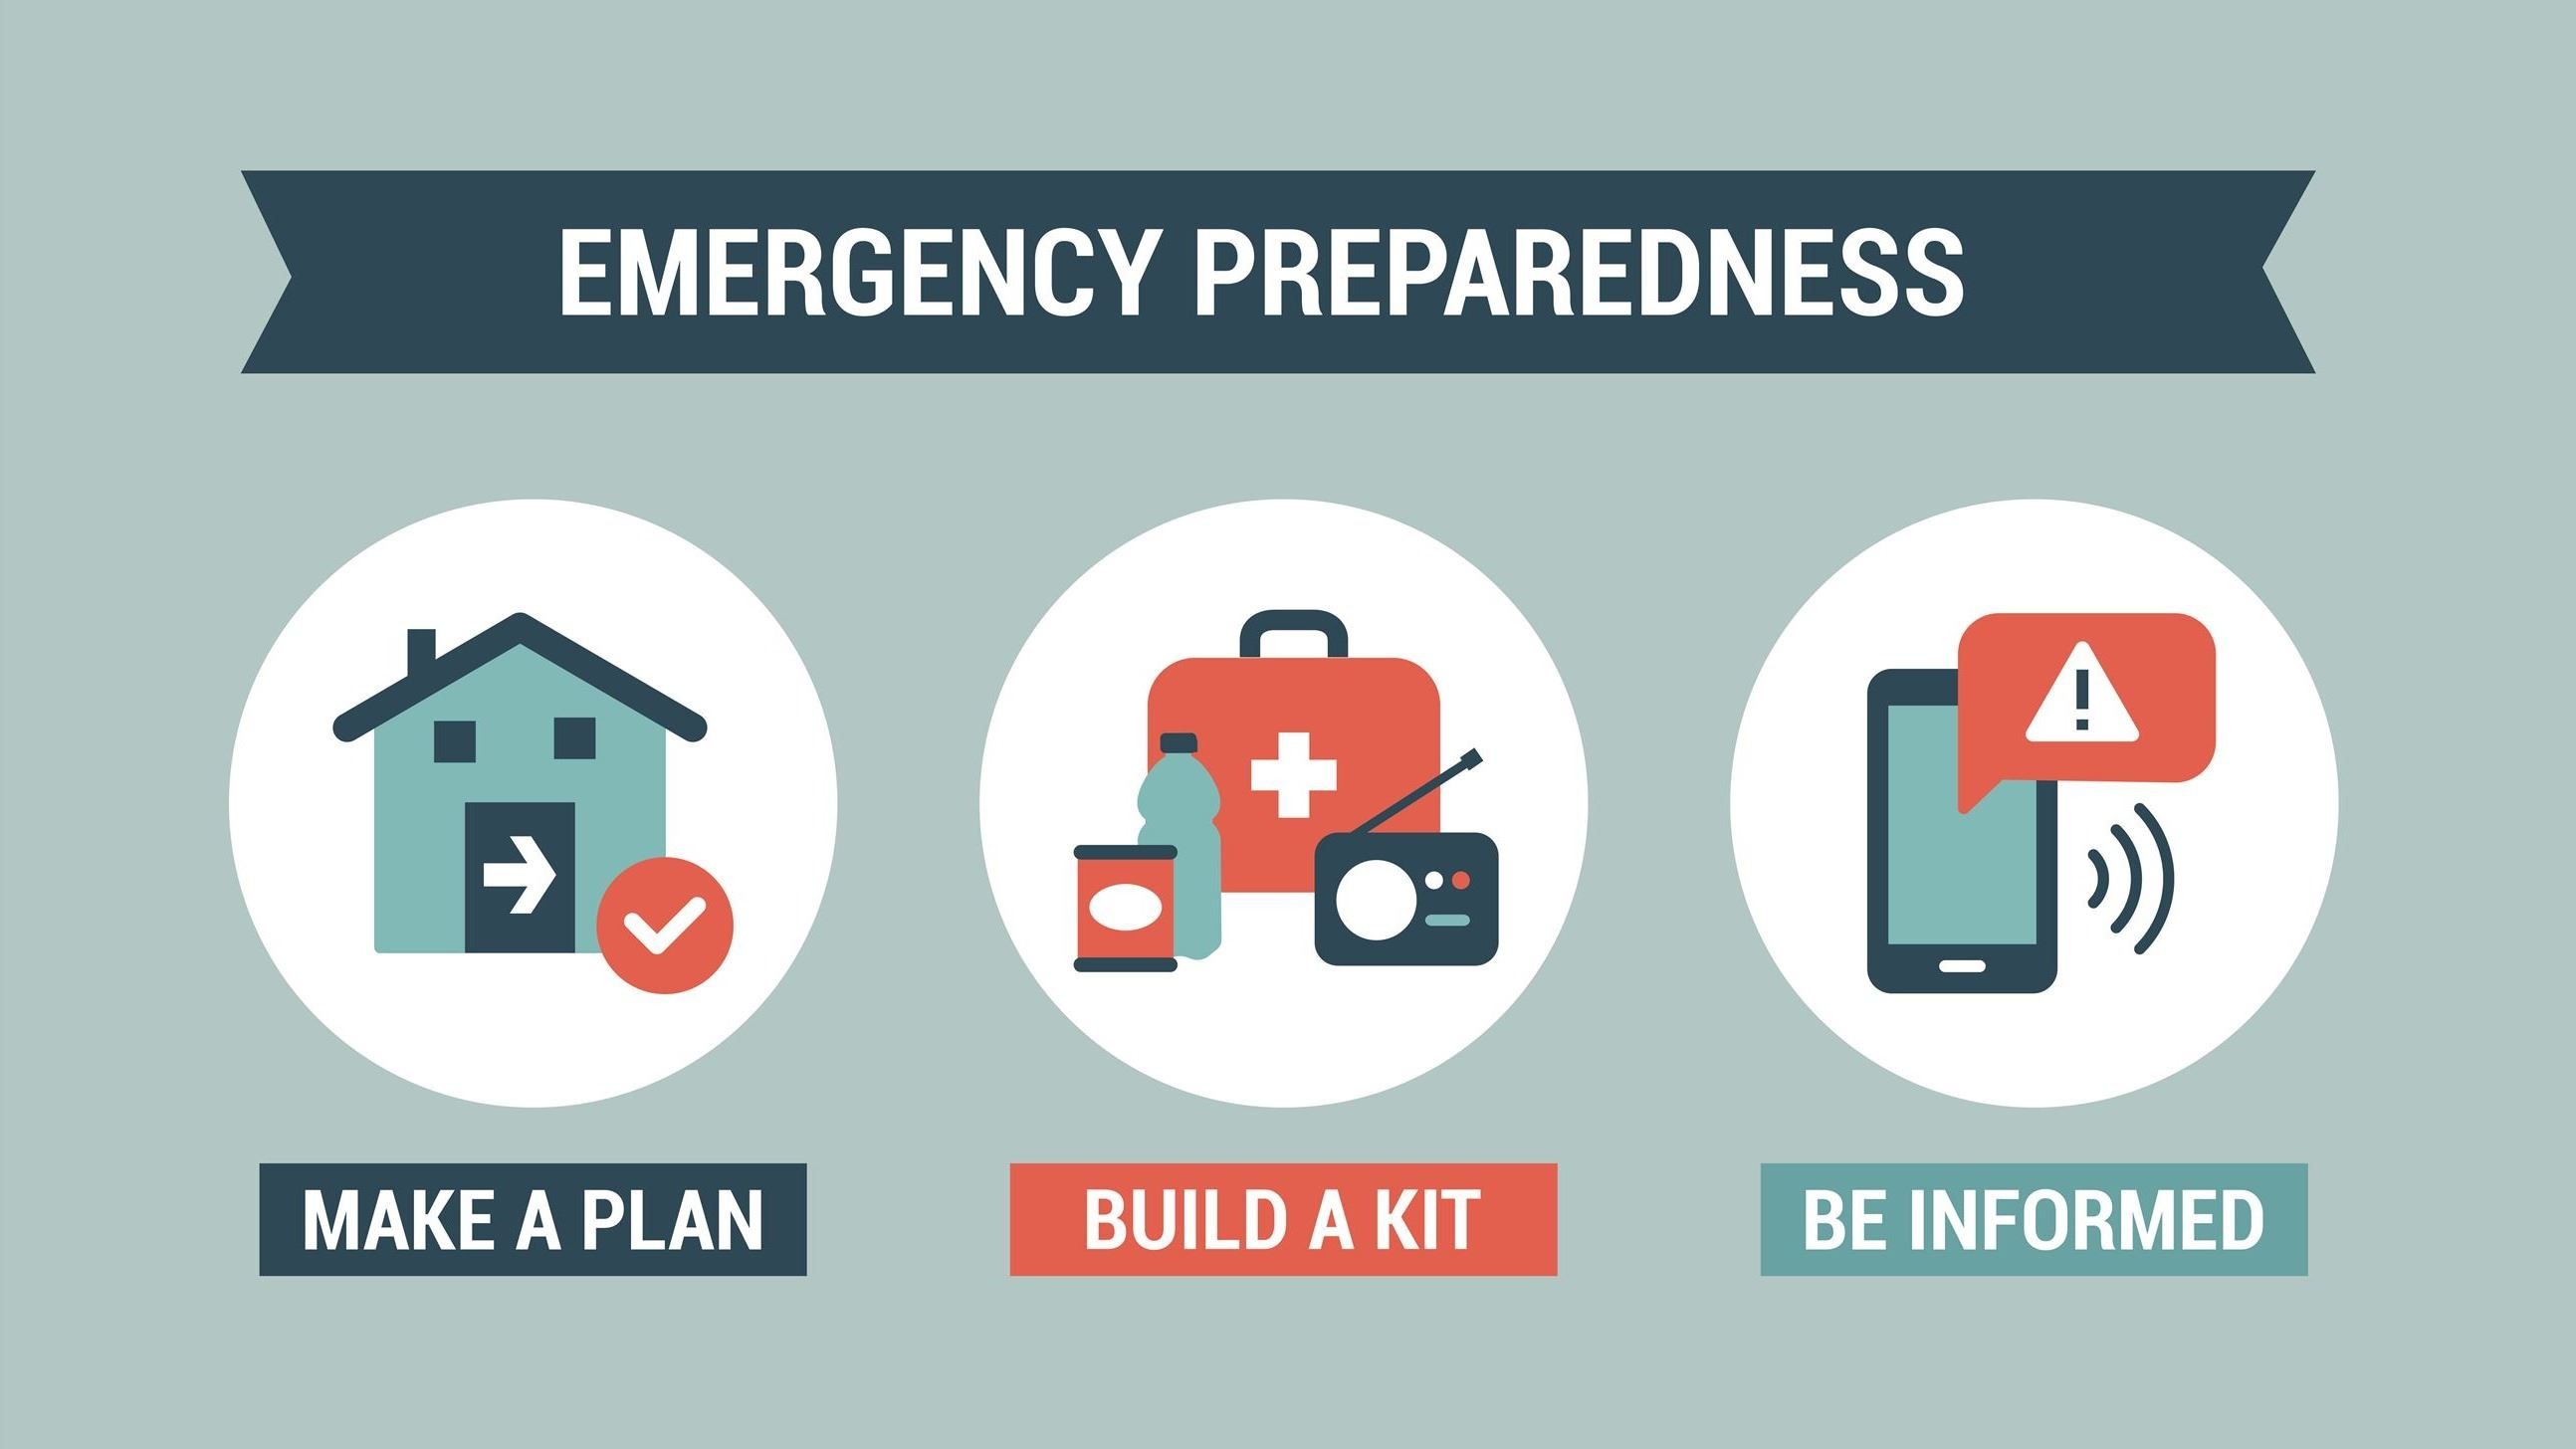 Emergancy Preparedness, make a plan, build a kit, be informed